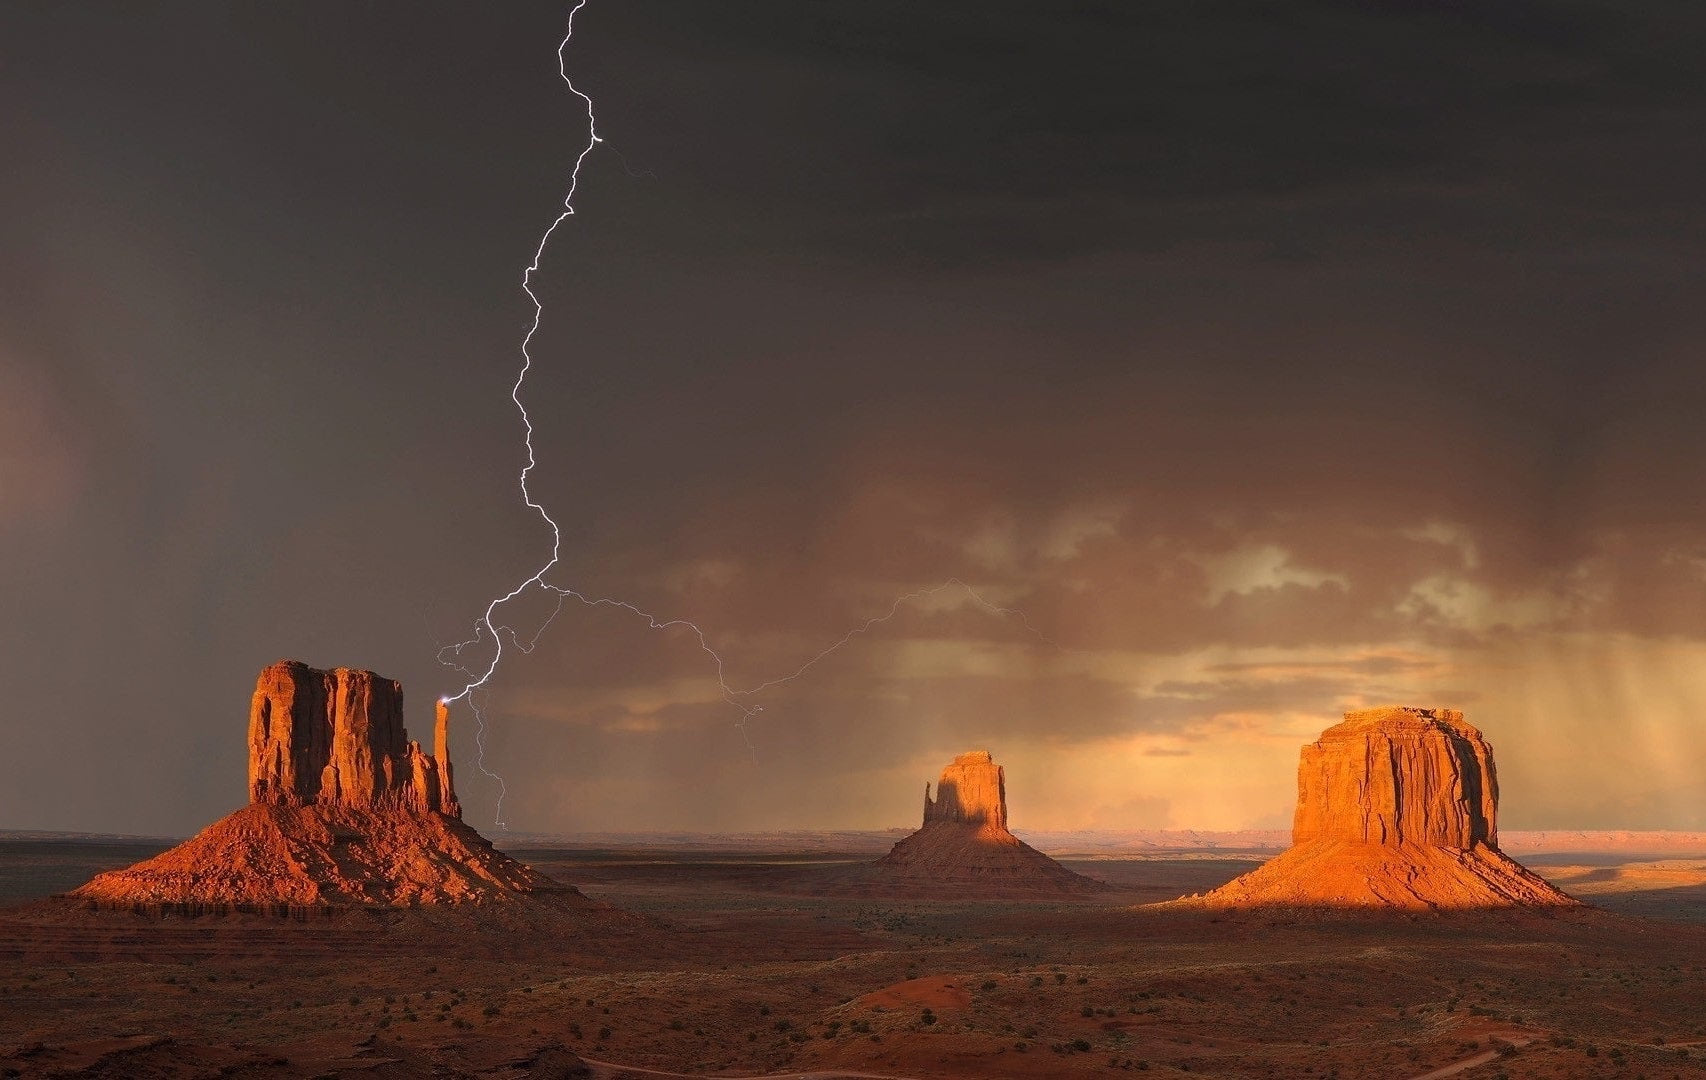 How to Do Lightning Photography in Daytime